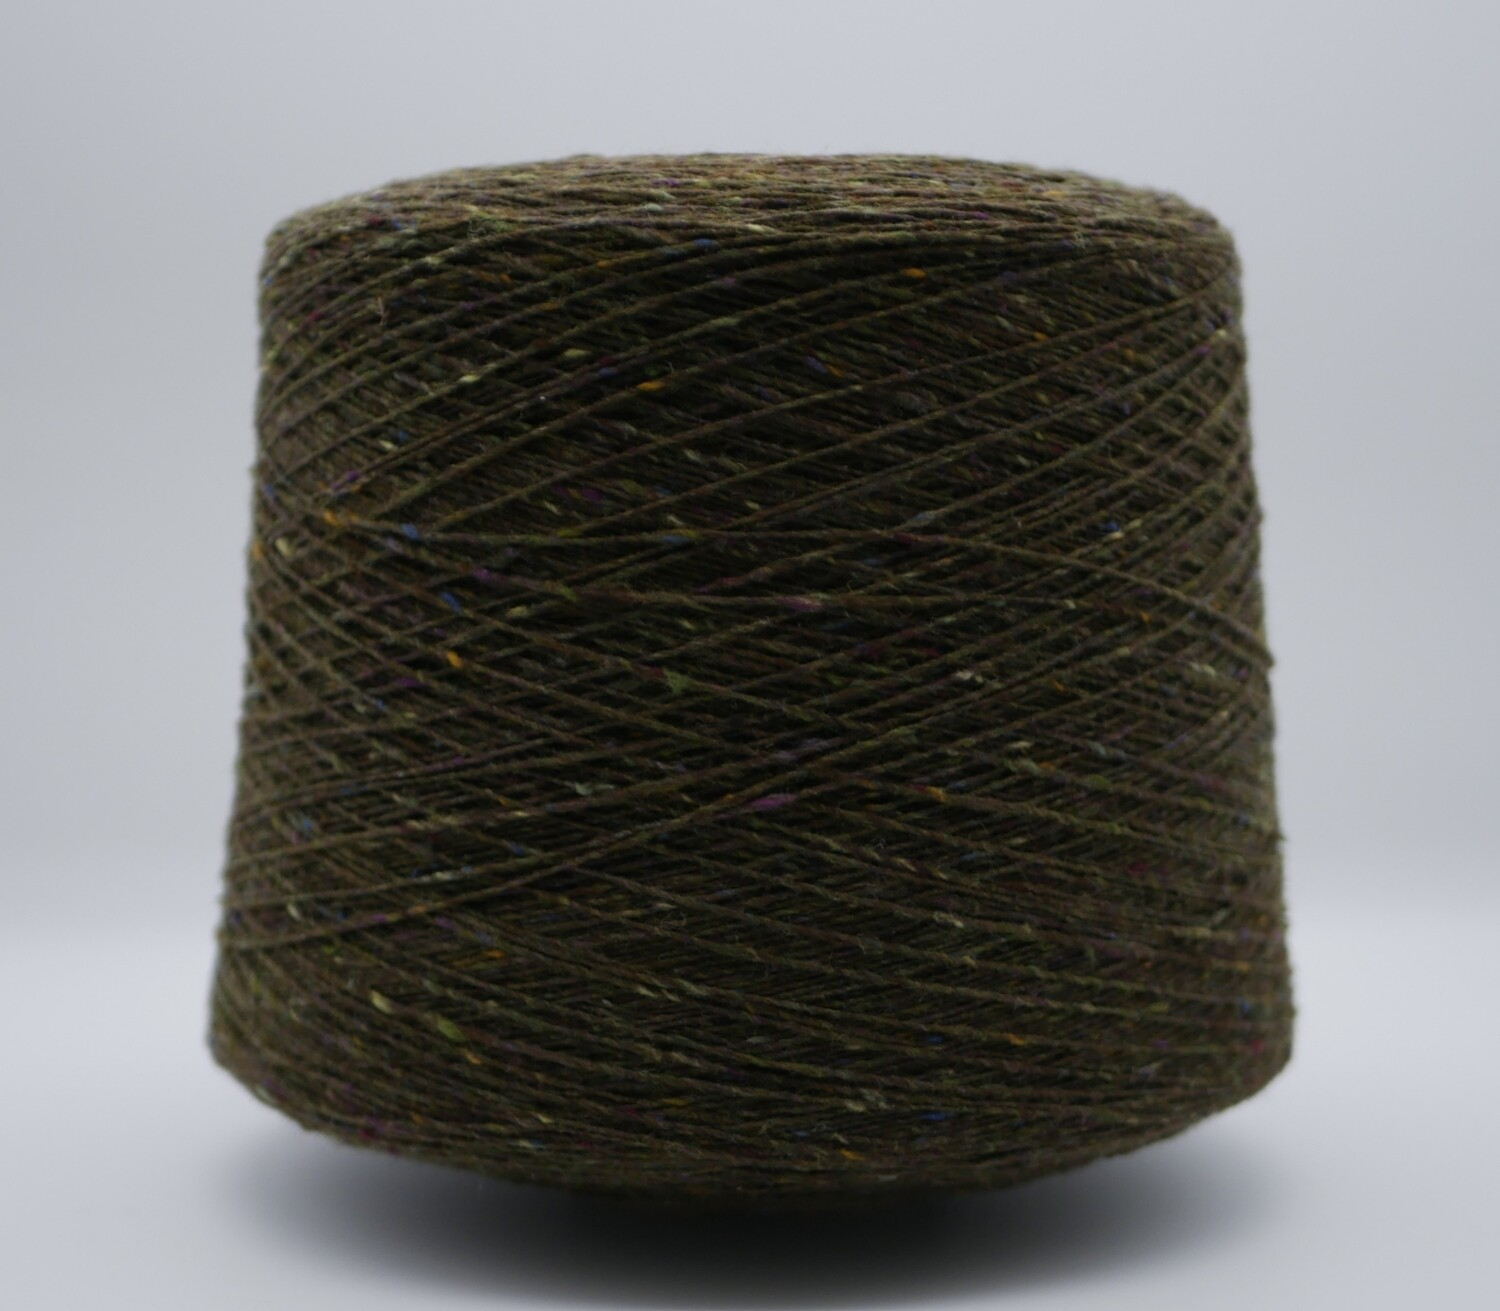 Soft Donegal tweed  oдинарный, код 5502, 50 гр